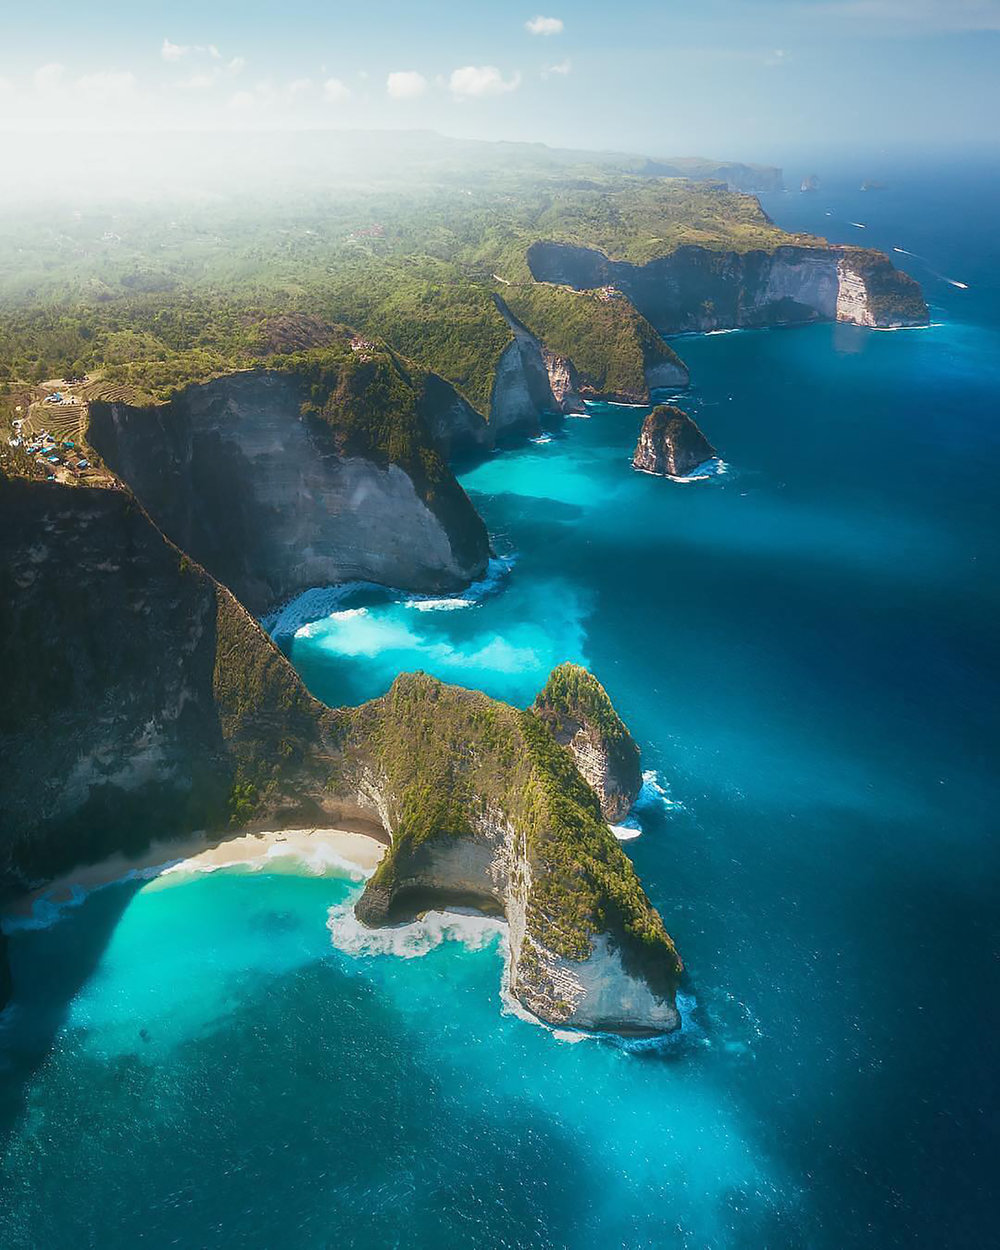 "Check out this breathtaking shot we found on @paradise, which shows the shoreline of Nusa Penida, an island located off the southeastern coast of Bali, Indonesia. Nusa Penida, along with the neighboring Lembongan and Ceningan islands, serves as an unofficial bird sanctuary for numbers of endangered Balinese and Indonesian bird species, most notably the Bali Starlin.  8°44'00.0""S, 115°32'00.0""E  Source imagery: Karl 'Shakur' Ndieli"